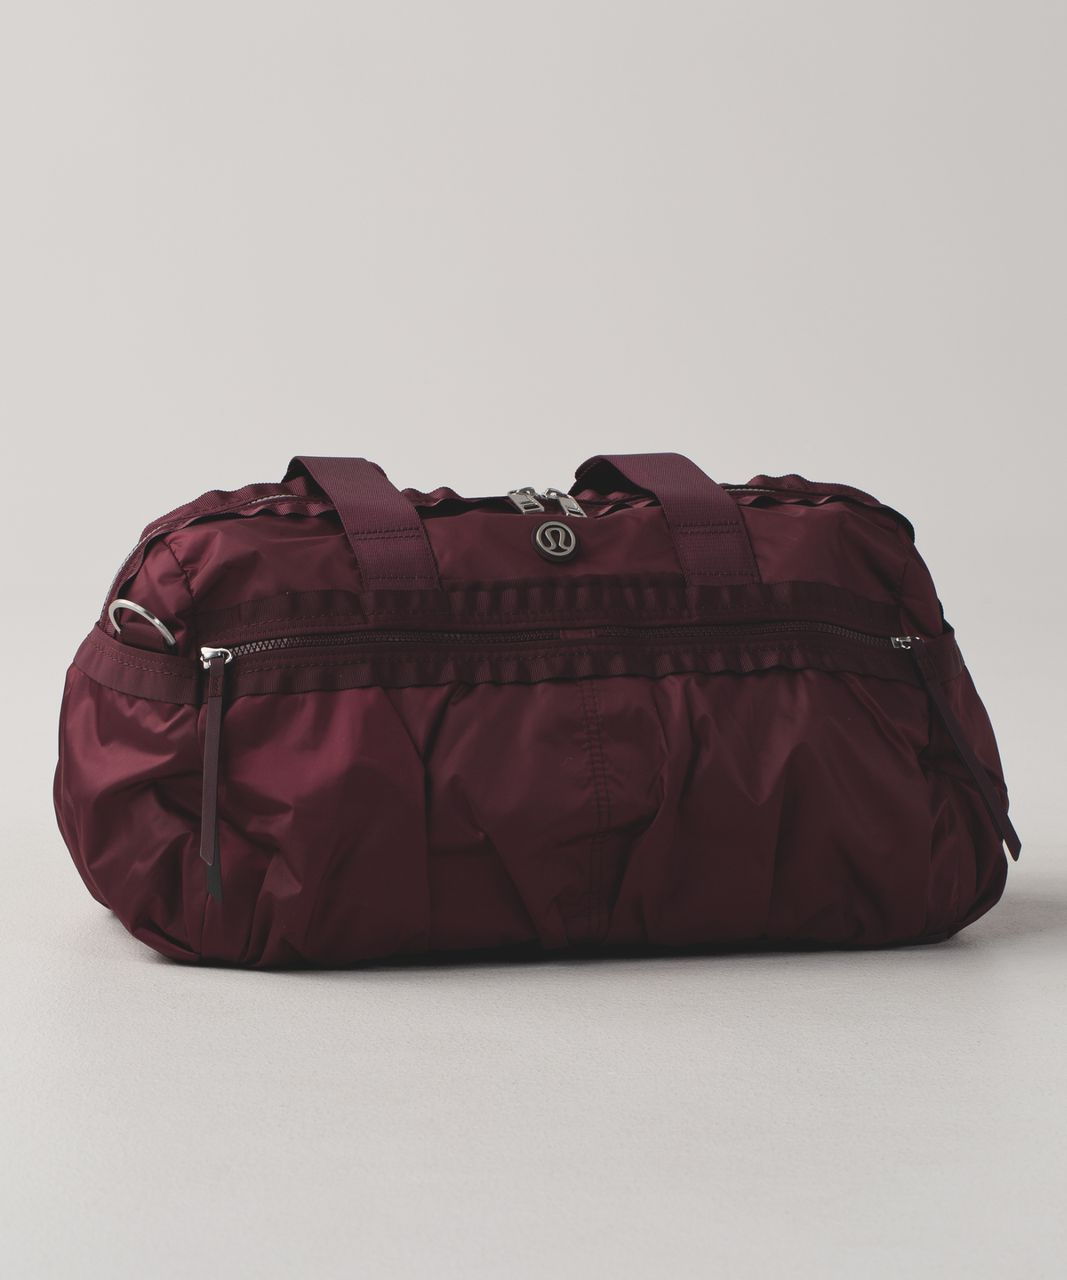 00c4ddb7b0a Lululemon Gym To Win Duffel - Wine Berry / Bordeaux Drama - lulu fanatics